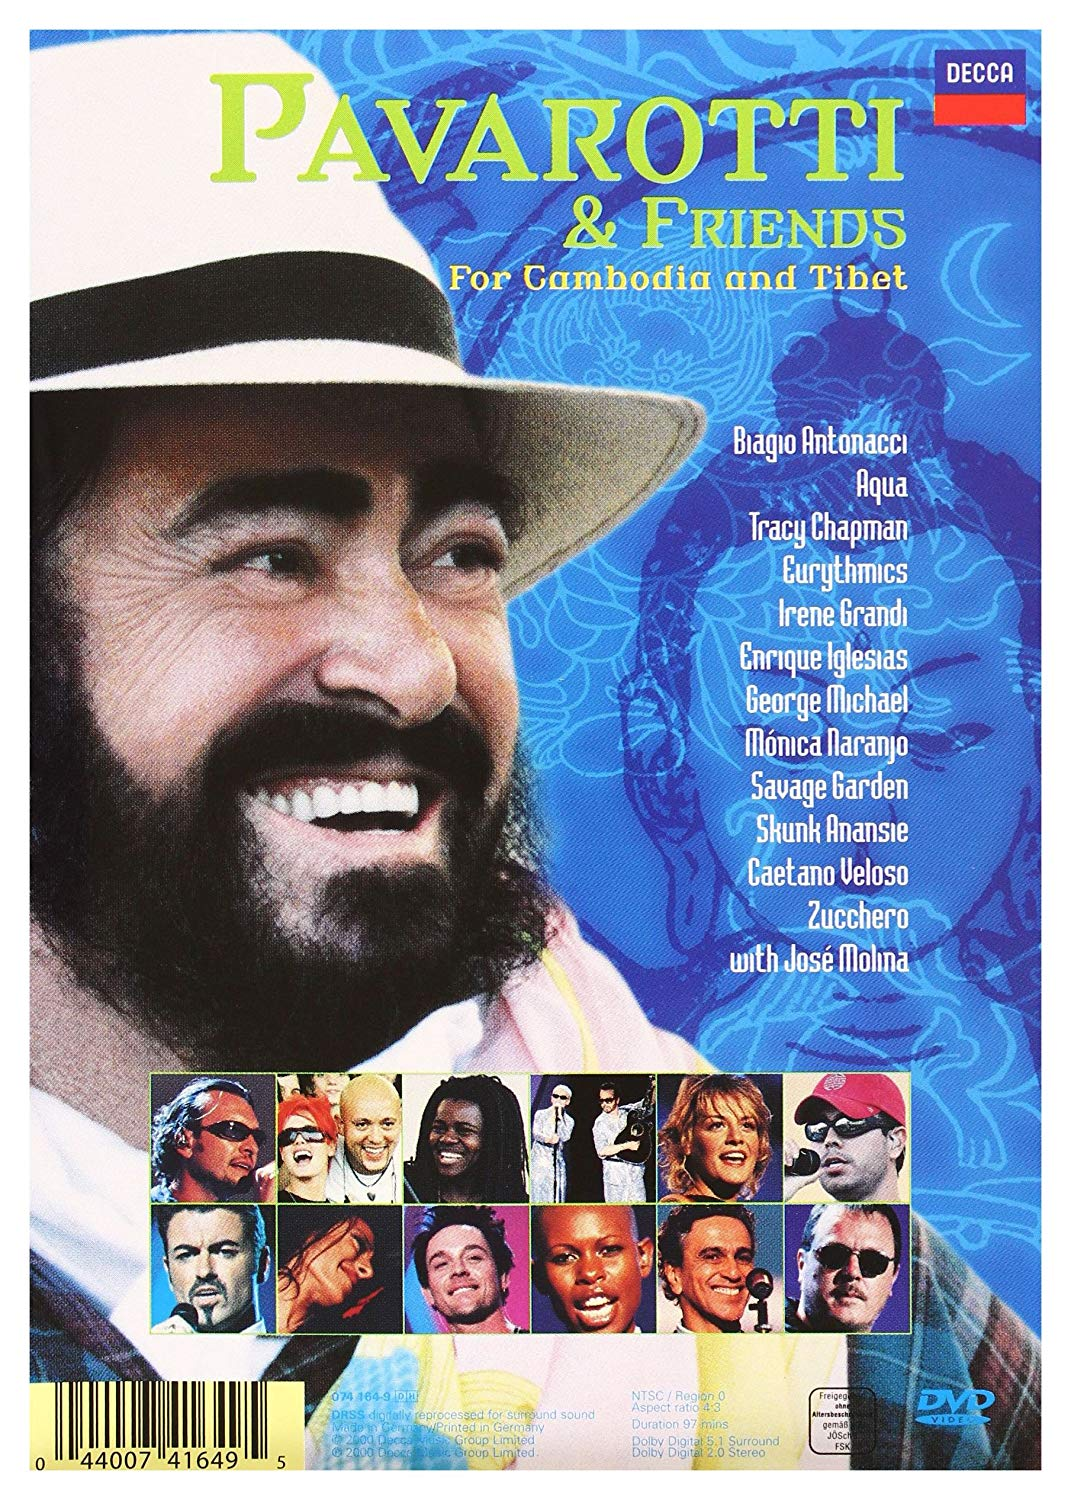 PAVAROTTI & FRIENDS: FOR CAMBODIA AND TIBET / MY HEART'S DELIGHT